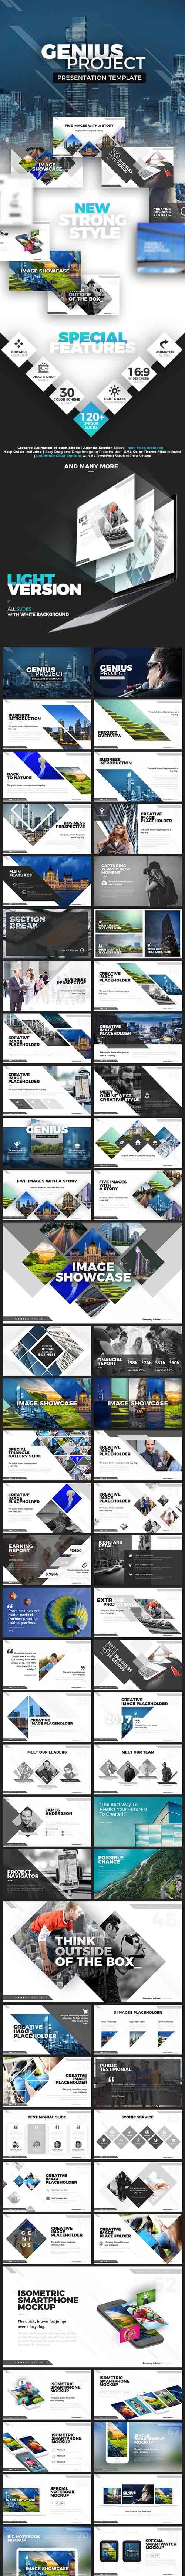 Genius Project Presentation Template 19728566